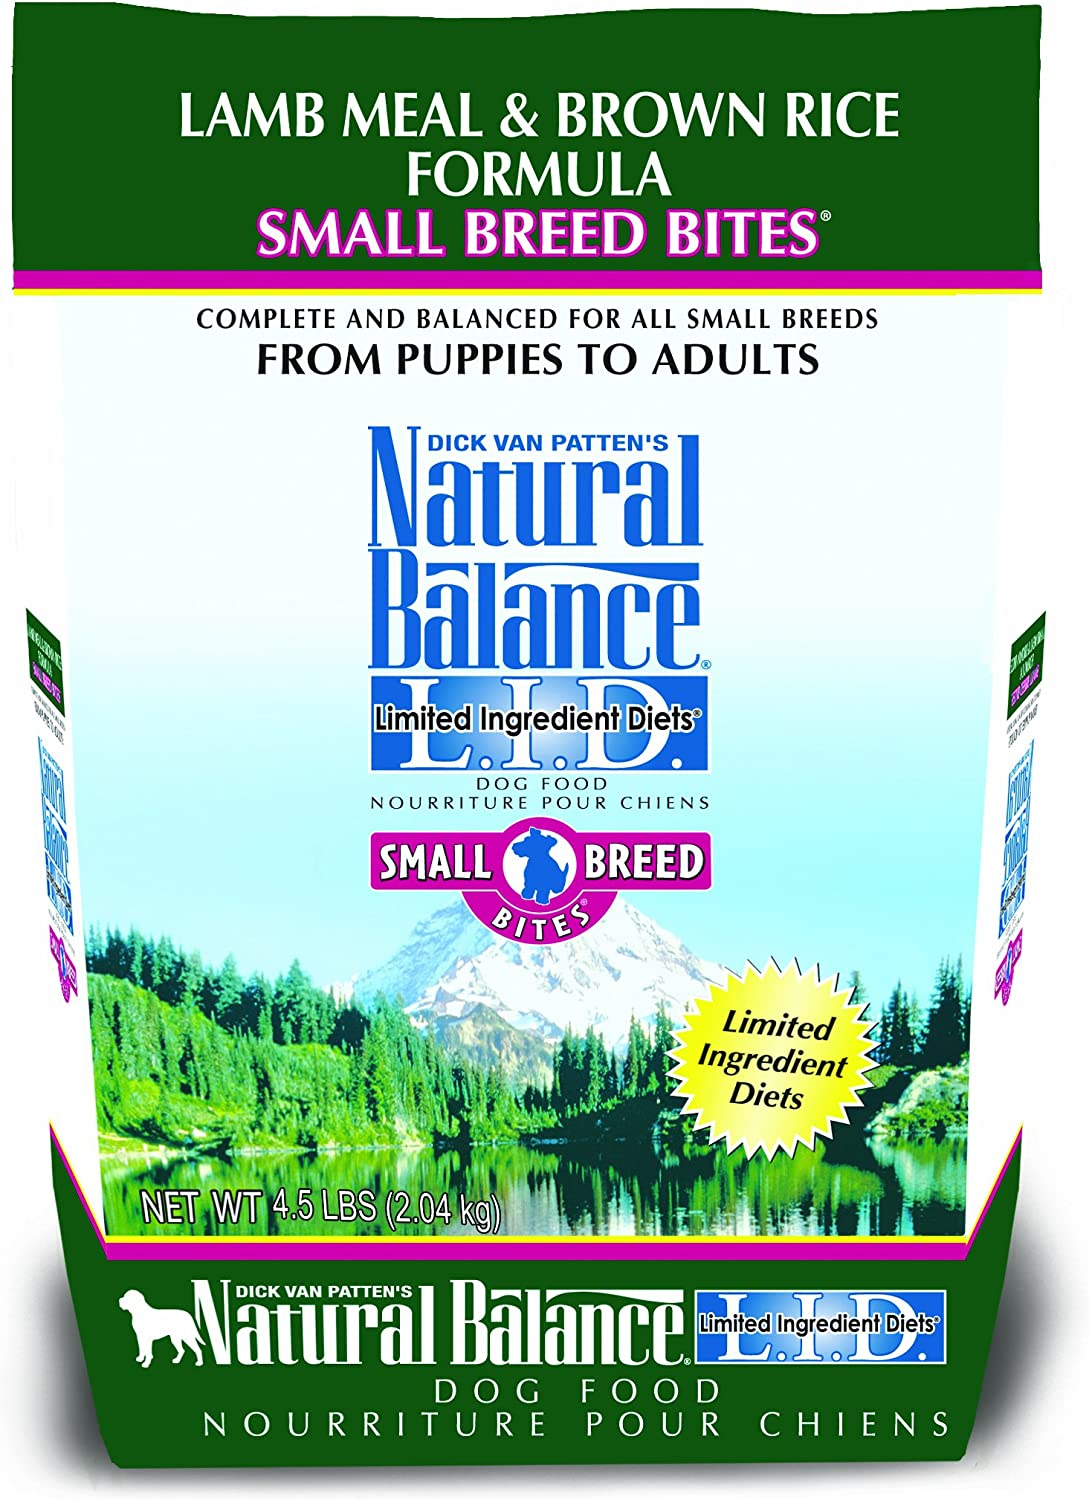 Dick Van Patten's Natural Balance Limited Ingredient Diets Lamb Meal and Brown Rice Formula Small Breed Bites Dry Dog Food, 4.5Pound Bag by Natural Balance